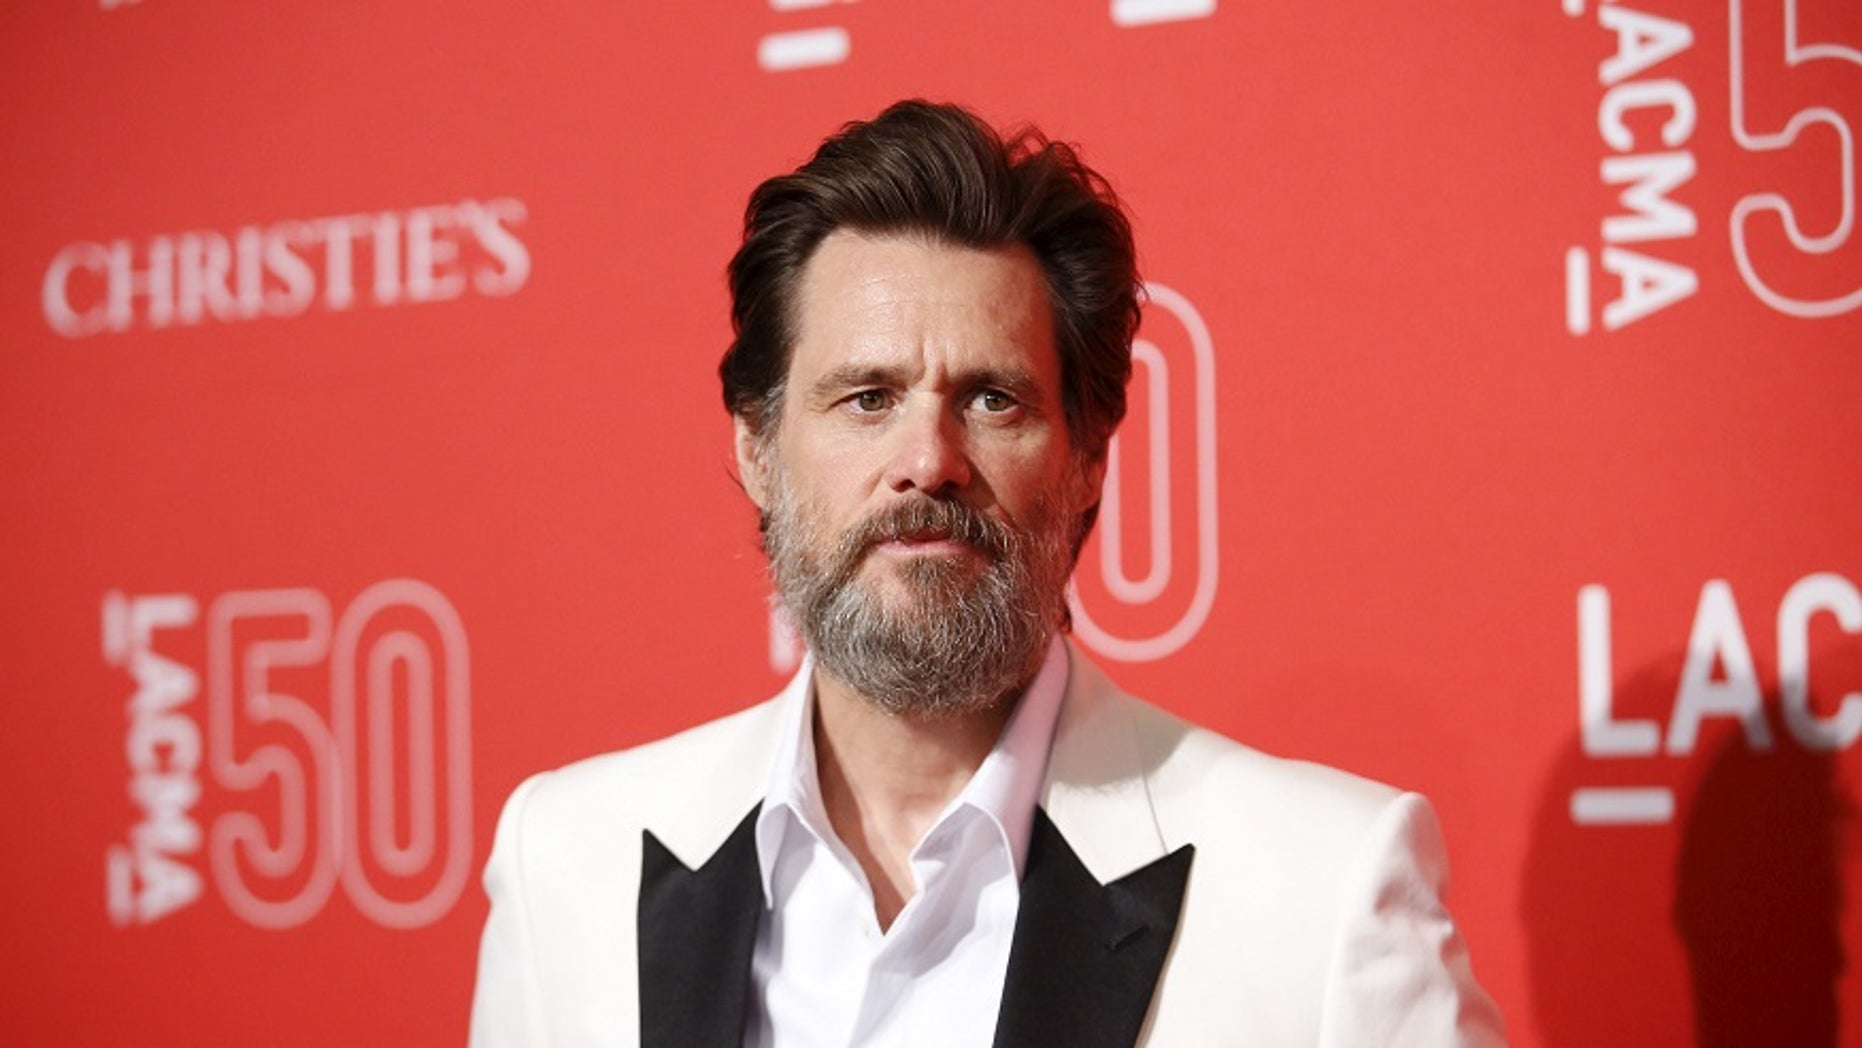 Jim Carrey filed a motion against the estate of his late girlfriend Cathriona White, saying she had STDs before they met and faked medical records to extort him.